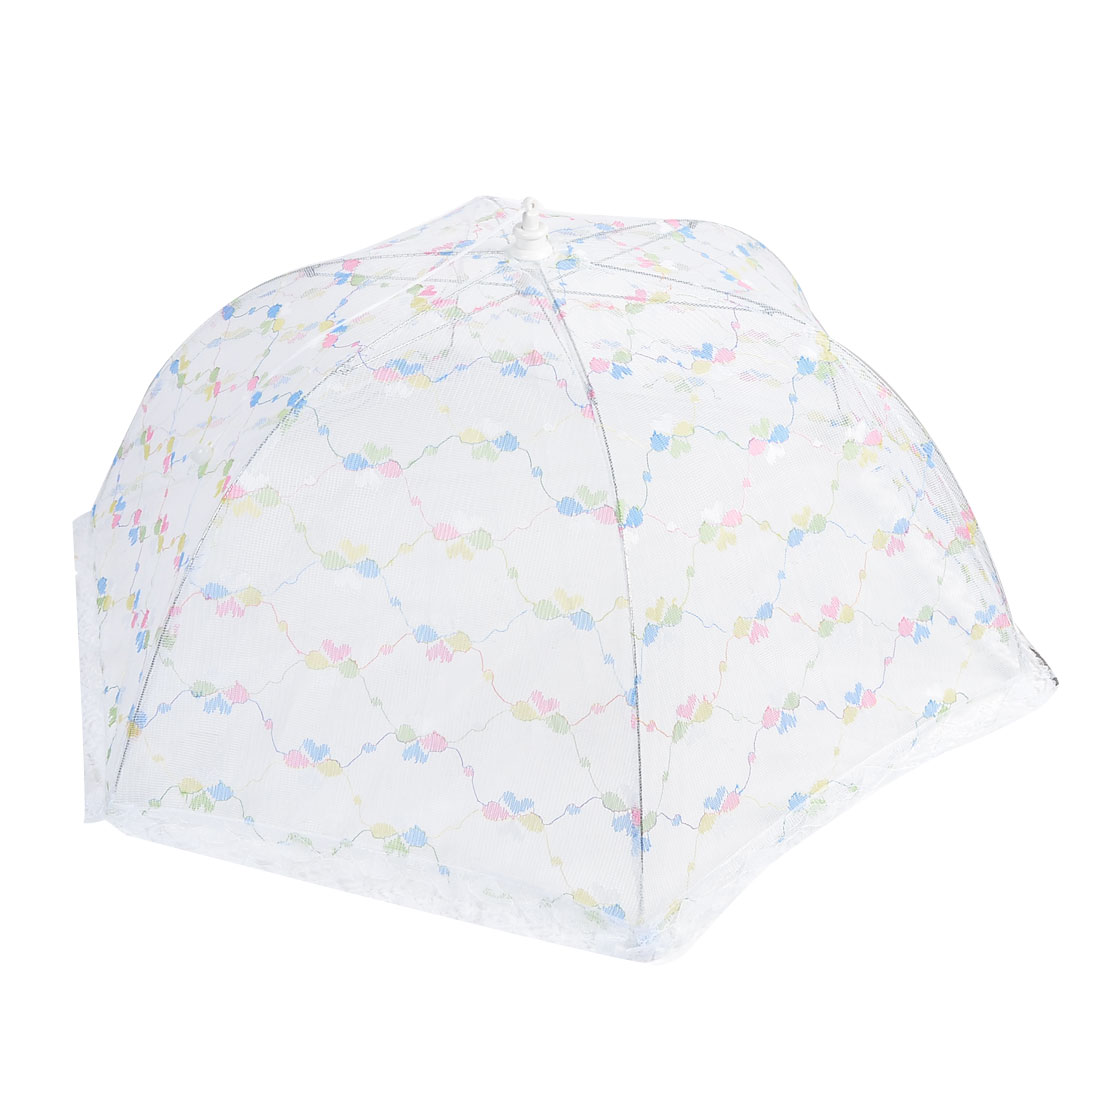 73cm Foldable Heart Pattern Metal Frame Lace Food Cover Umbrella White Blue